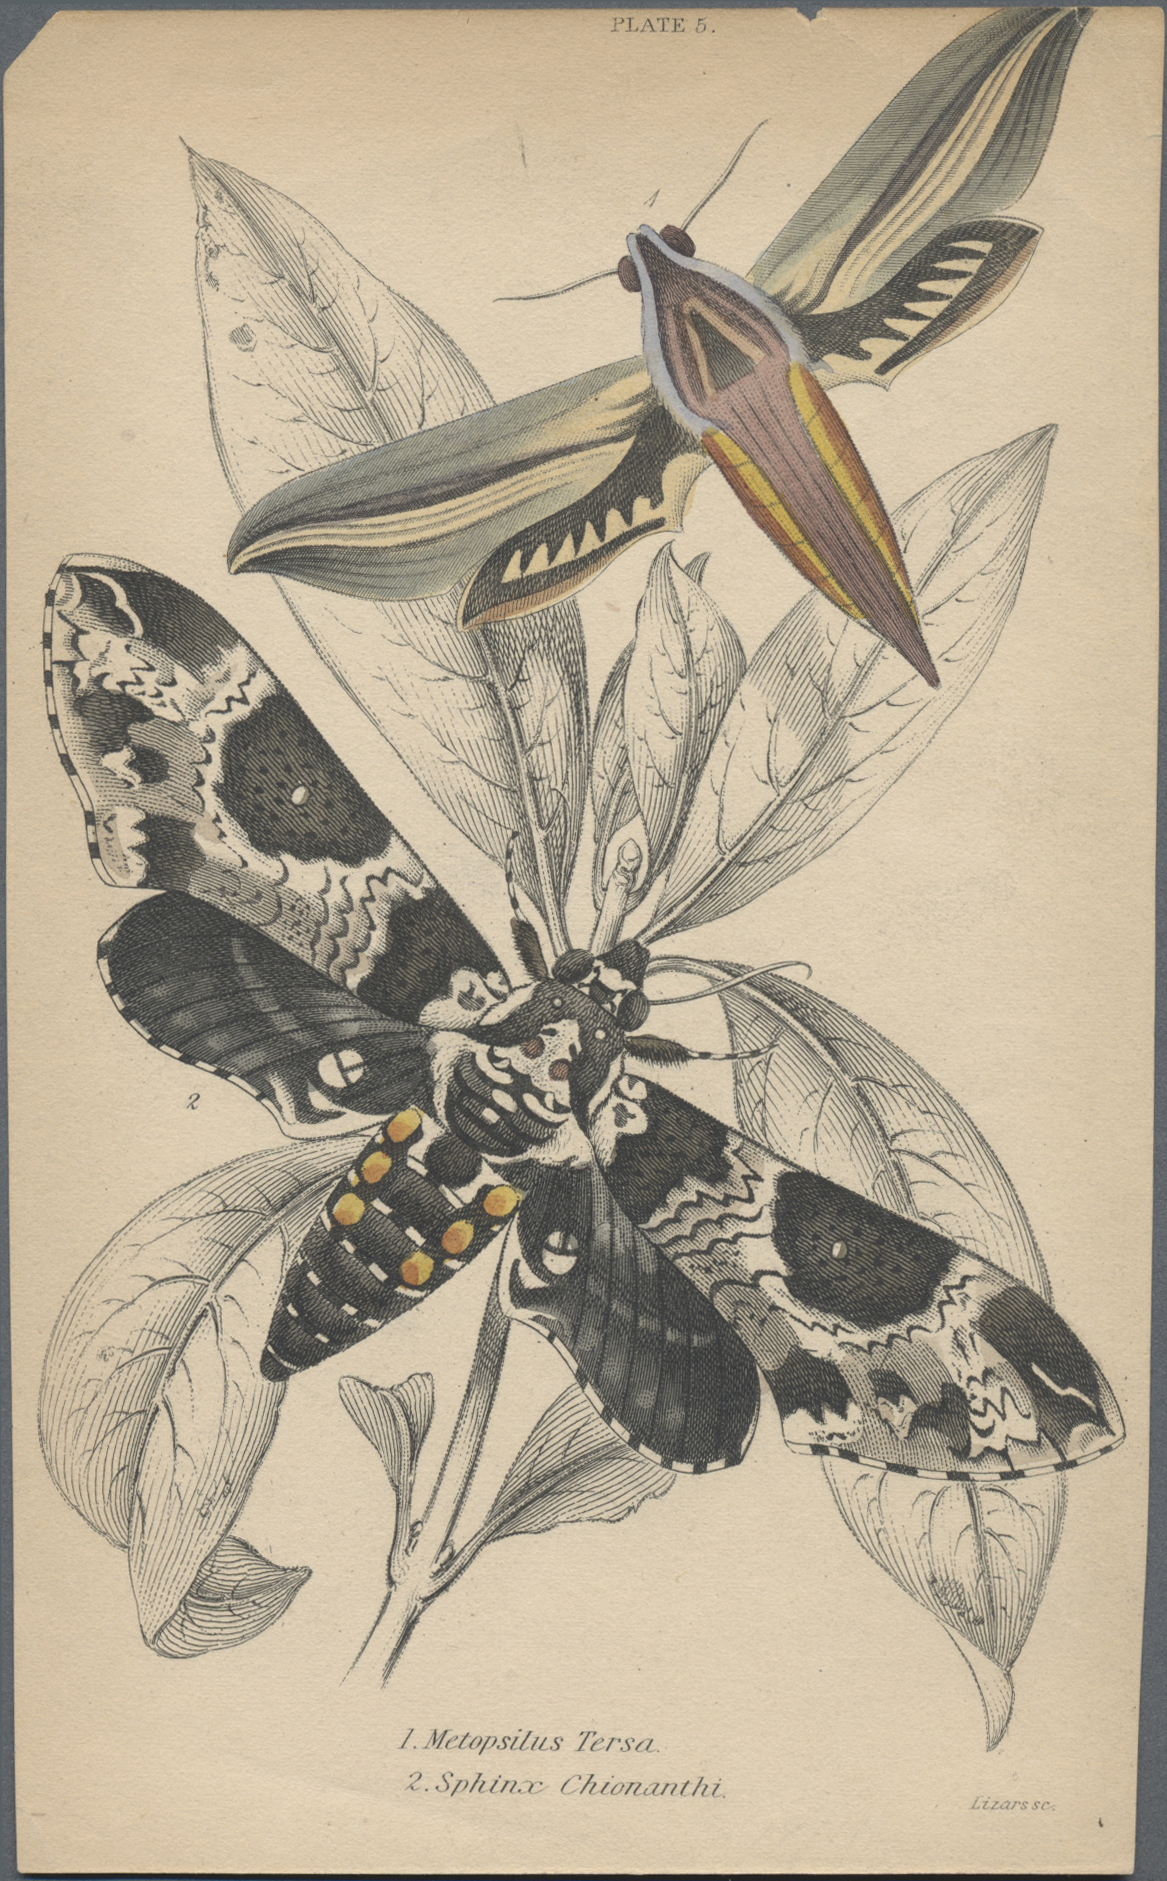 Lot 34879 - thematik: tiere-schmetterlinge / animals-butterflies  -  Auktionshaus Christoph Gärtner GmbH & Co. KG Sale #44 Collections Germany